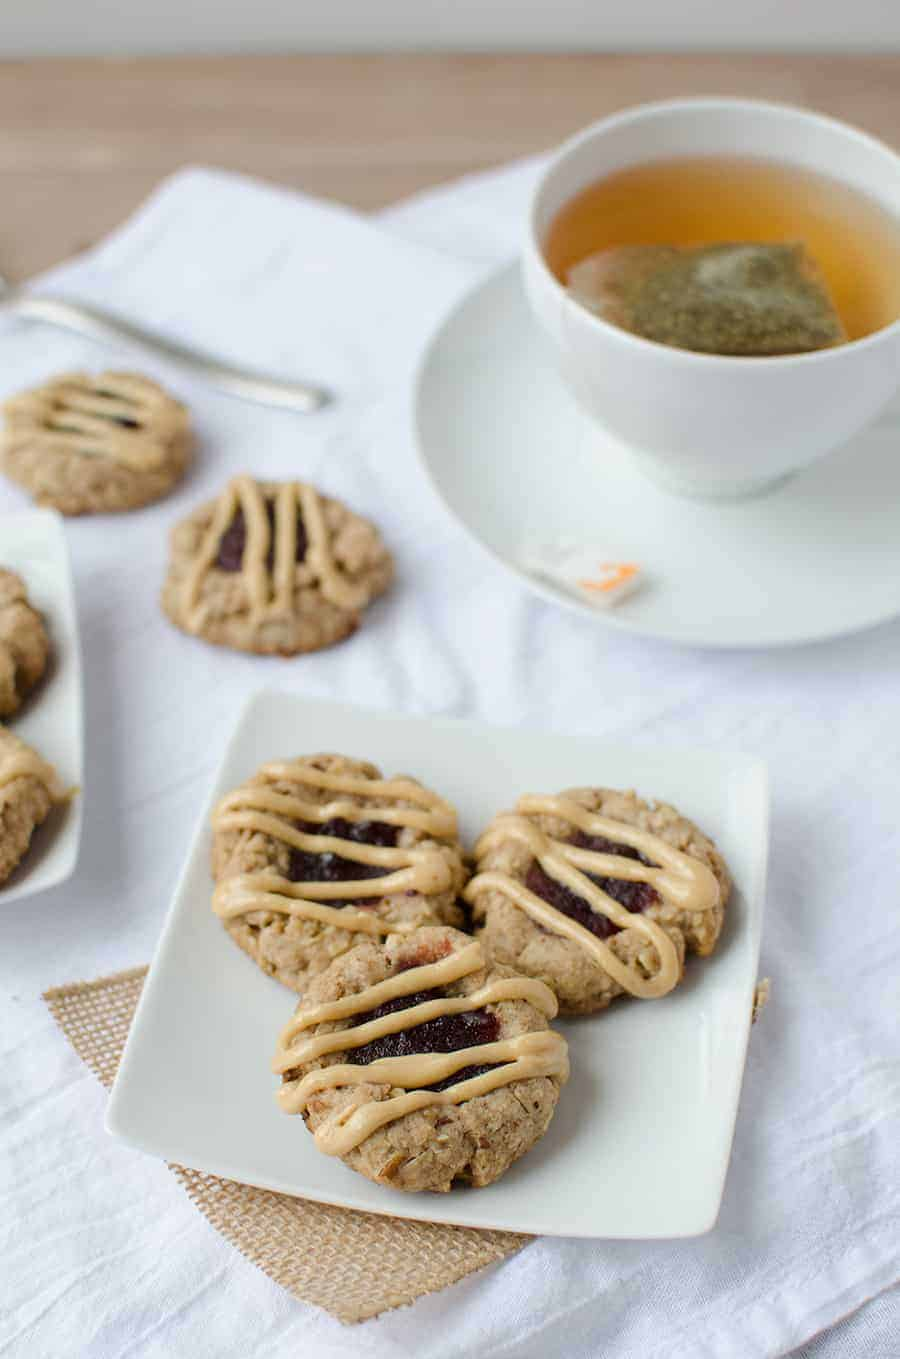 Thumbprint Cookies! Pecan cookies topped with cranberry jam and peanut butter drizzle. Wholesome, naturally sweetened and vegan! | www.delishknowledge.com